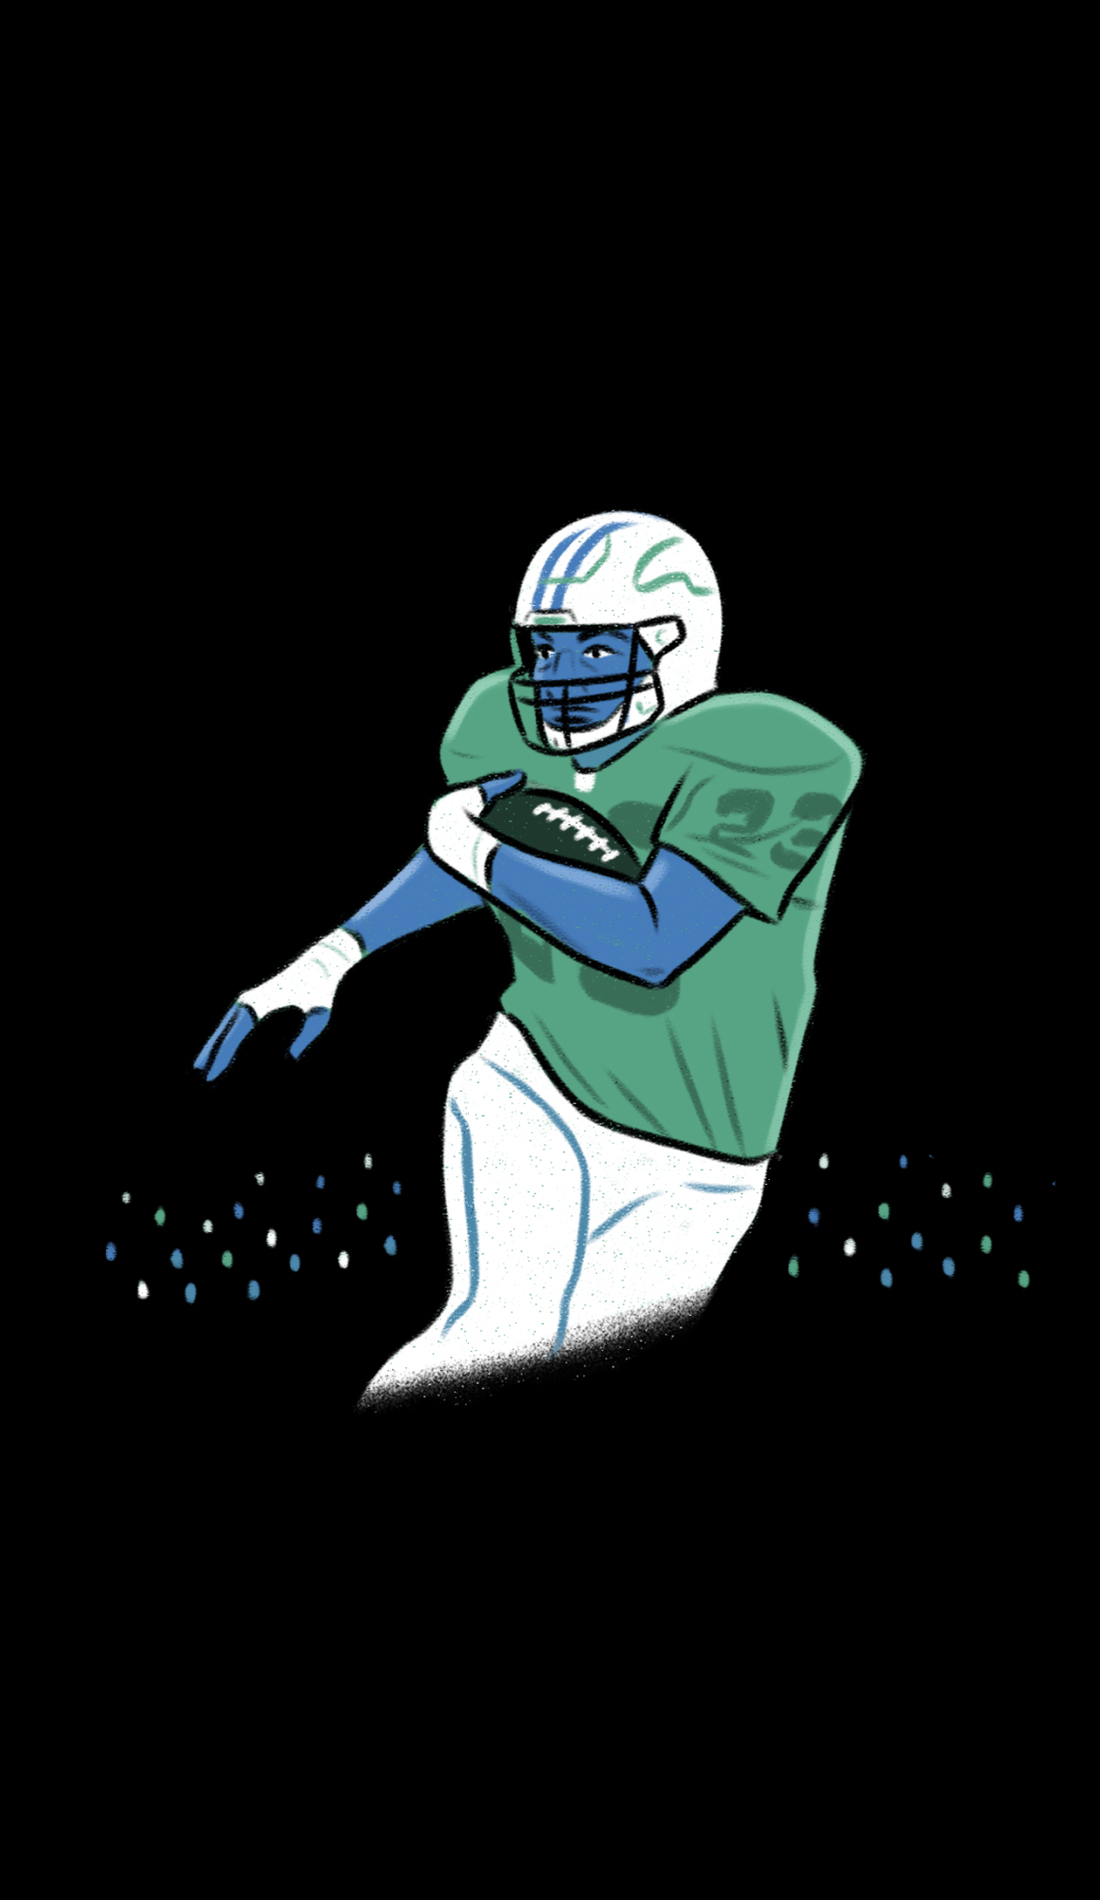 A Utah State Aggies Football live event